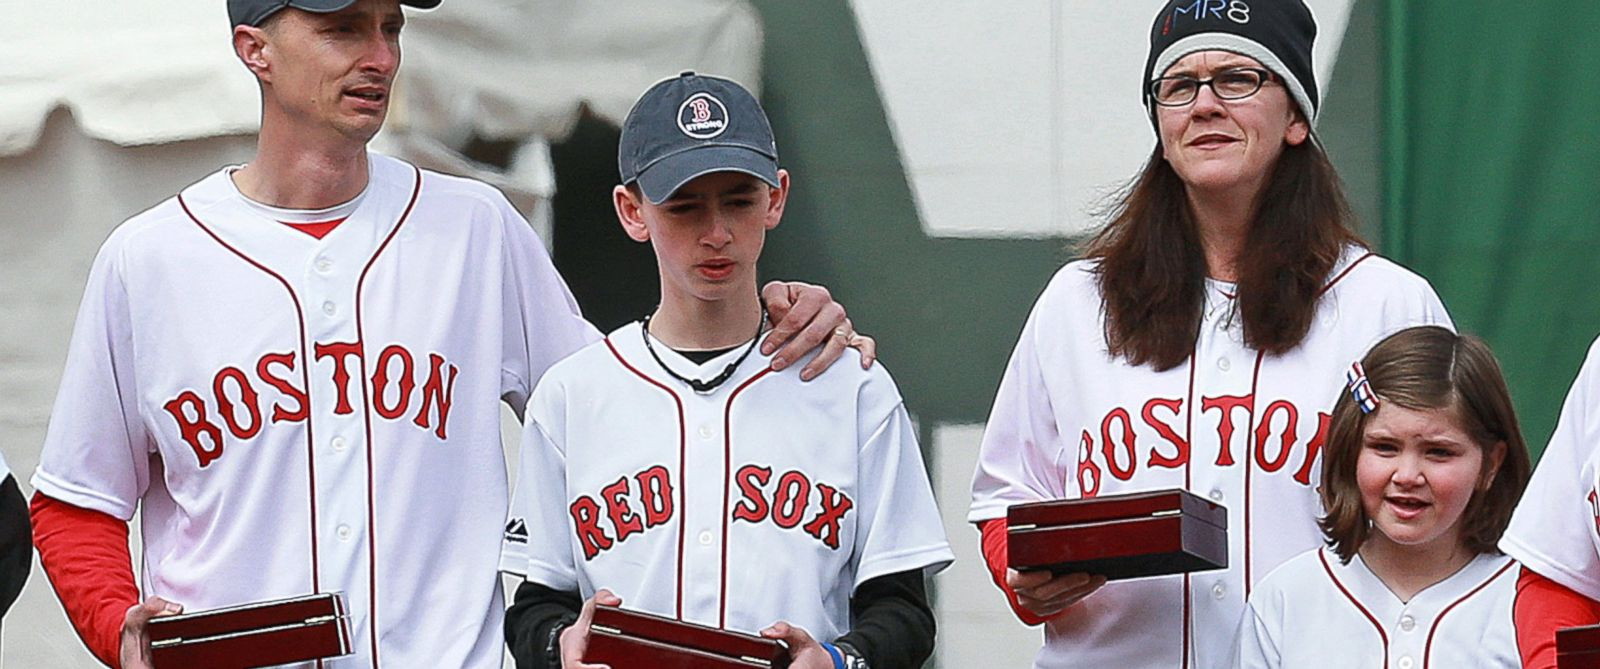 PHOTO: The family of Boston Marathon bombing victim Martin Richard carries the 2013 World Series championship rings